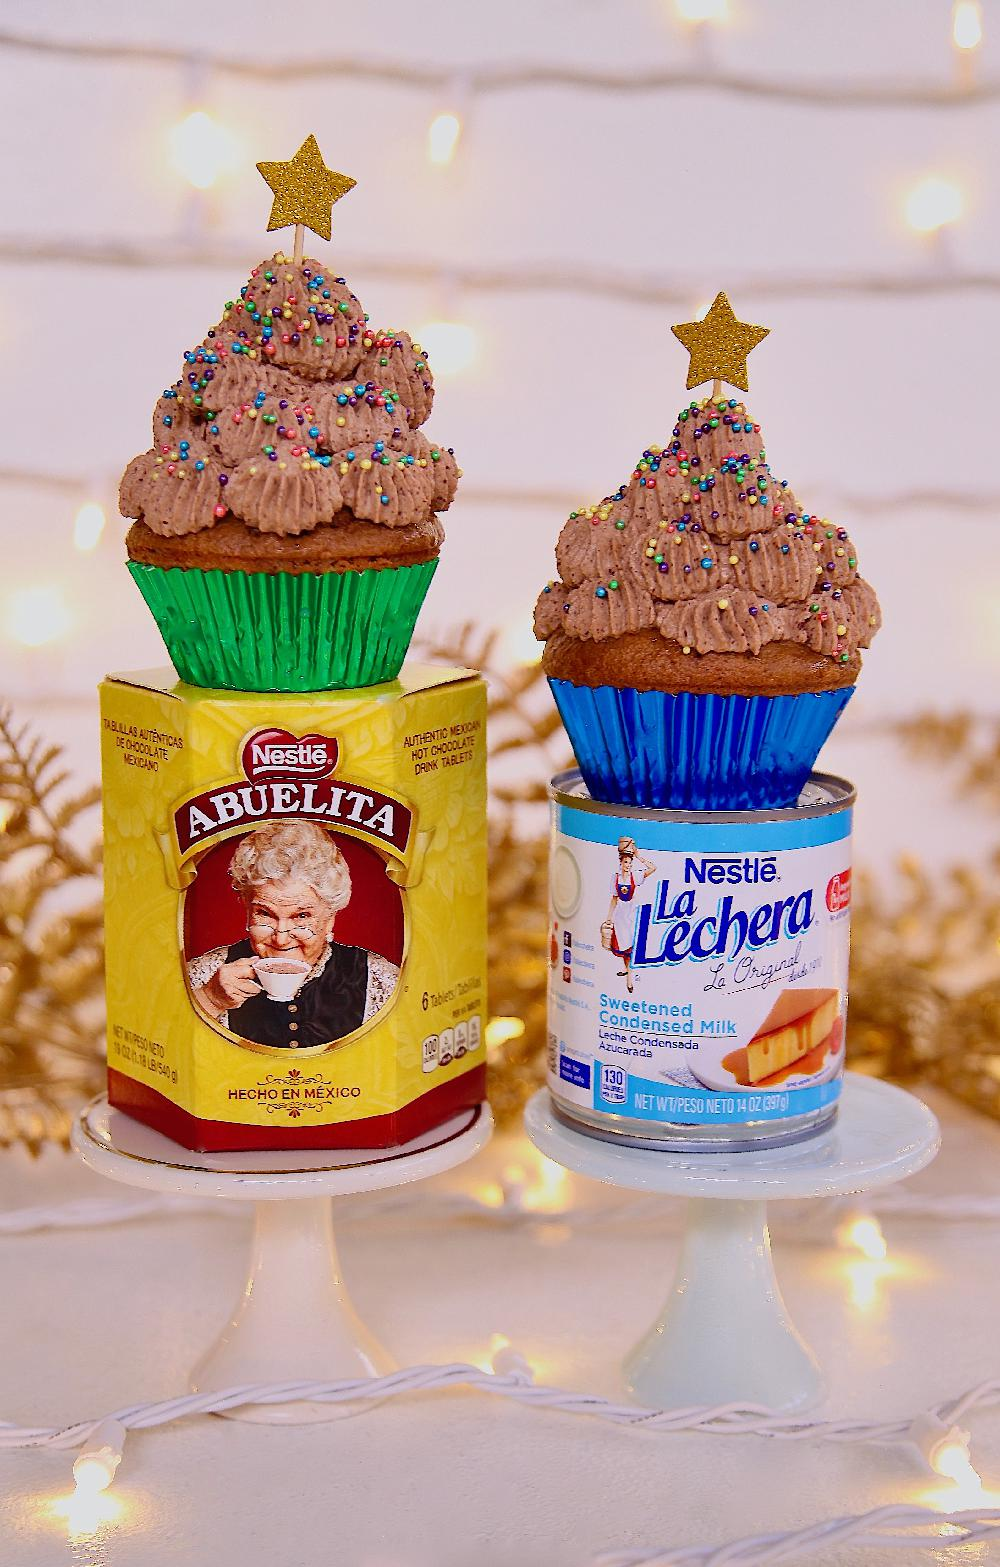 Mexican Chocolate Tres Leches Cupcakes with Abuelita and LA Lechera